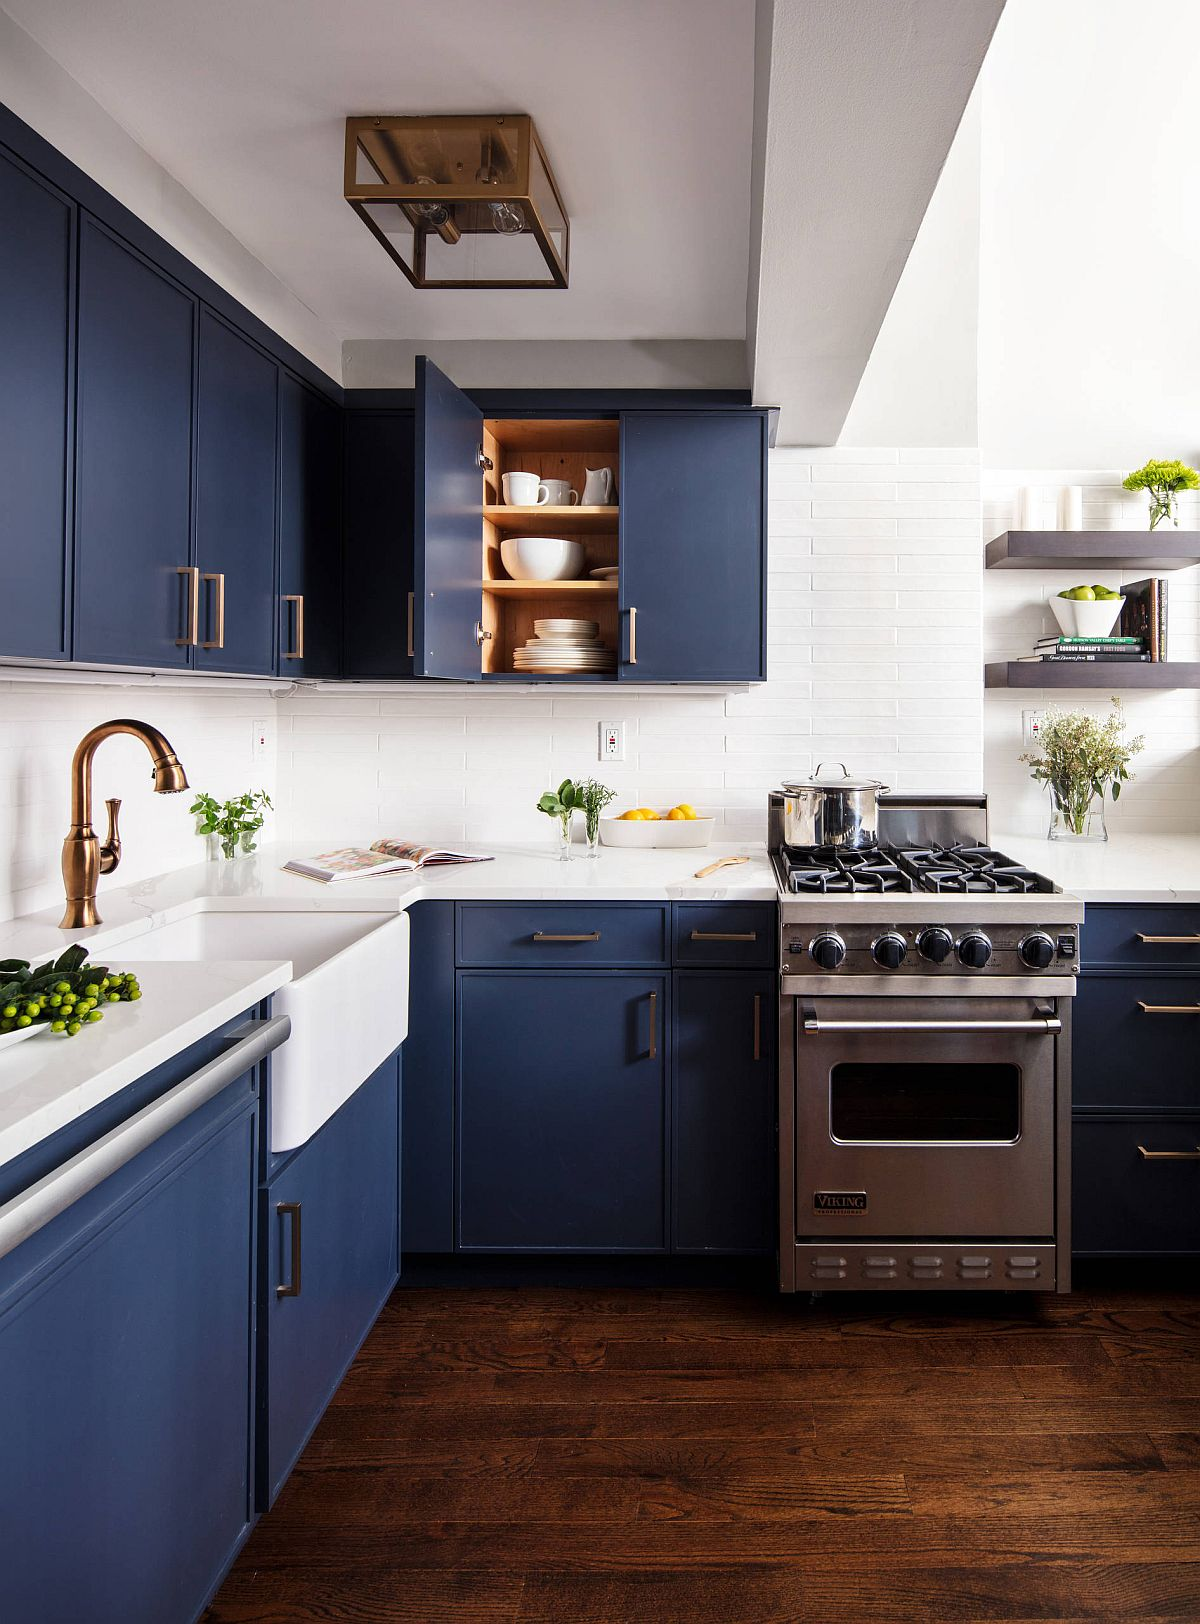 Dark navy blue and white kitchen feels both contemporary and nautical at the same time